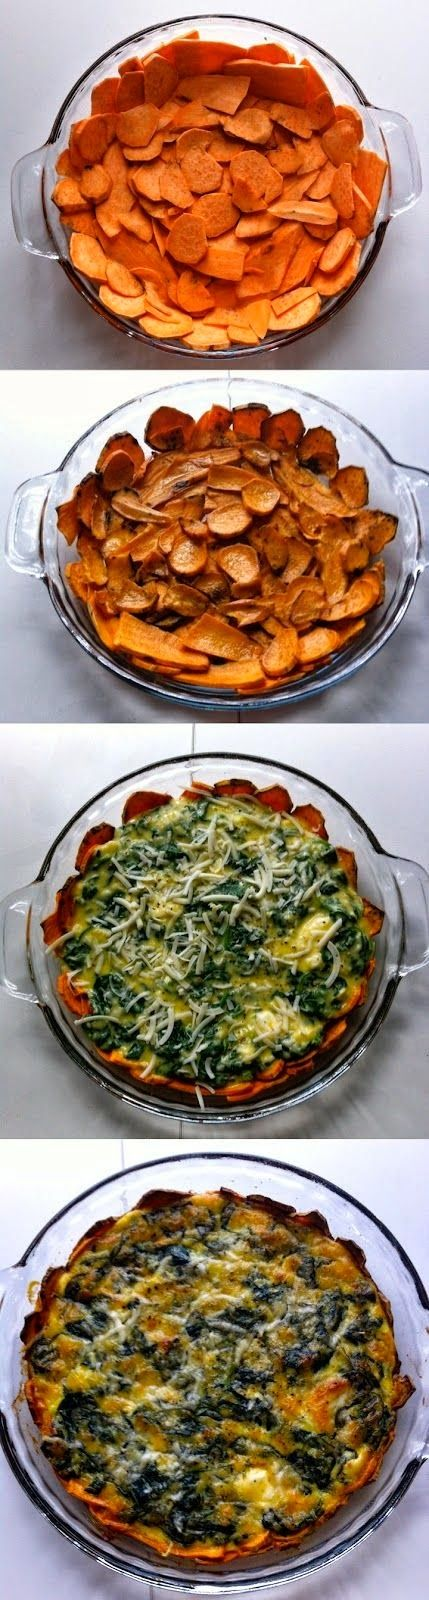 Very Best Pinterest Pins: Sweet Potato Crusted Spinach Quiche